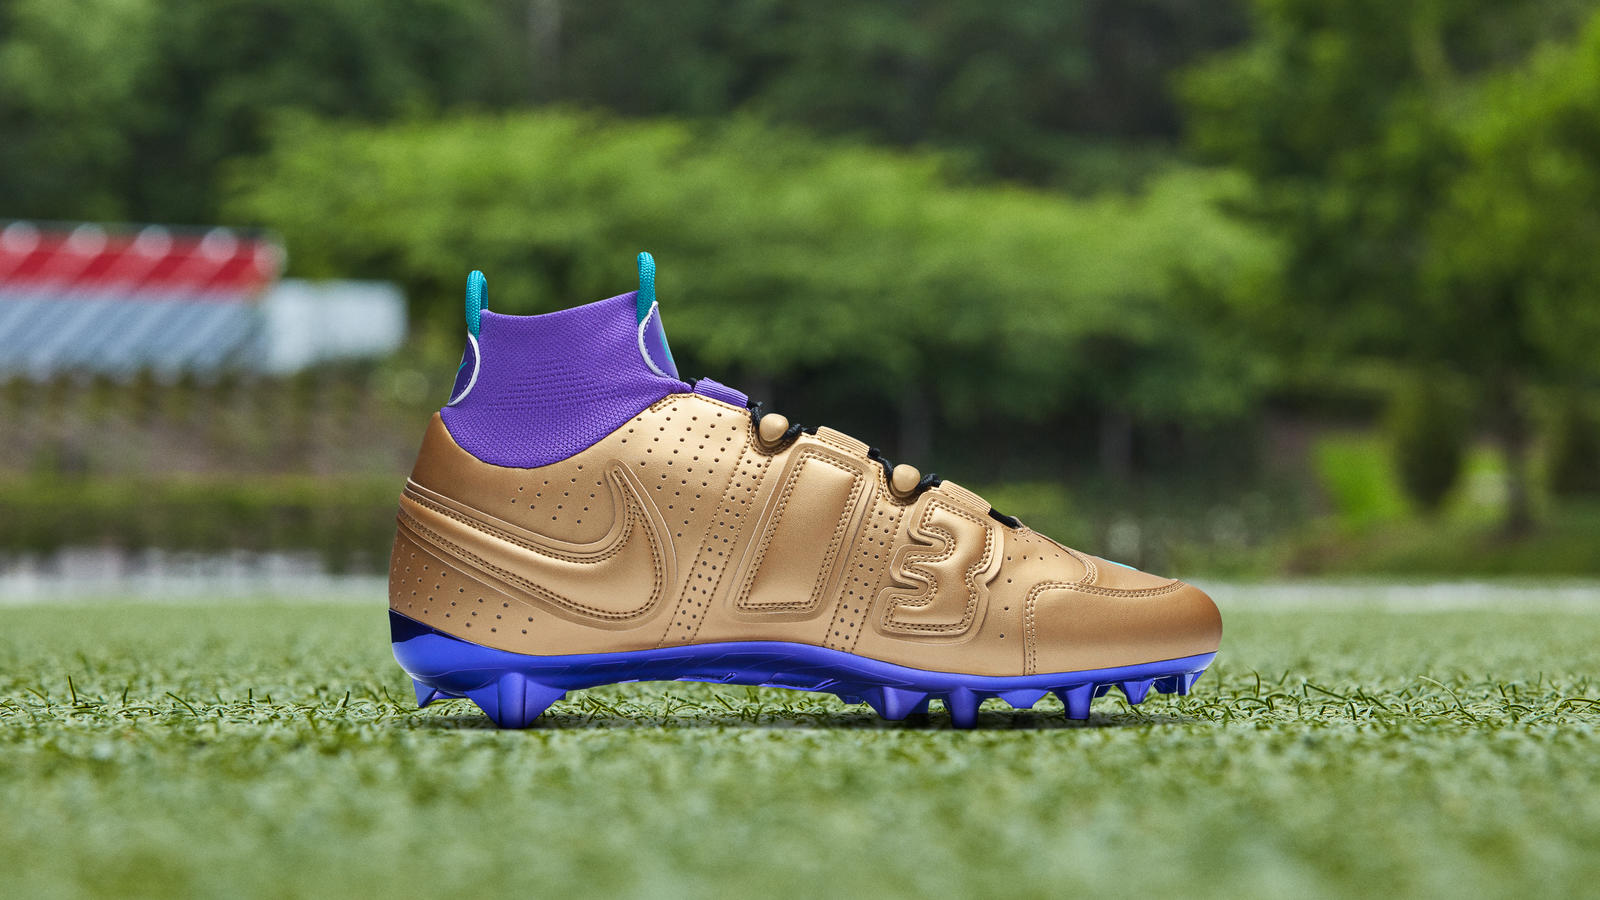 Nike Odell Beckham Jr. Pregame Cleats 2019-20 Season Air Jordan 5 Gold and Purple 1